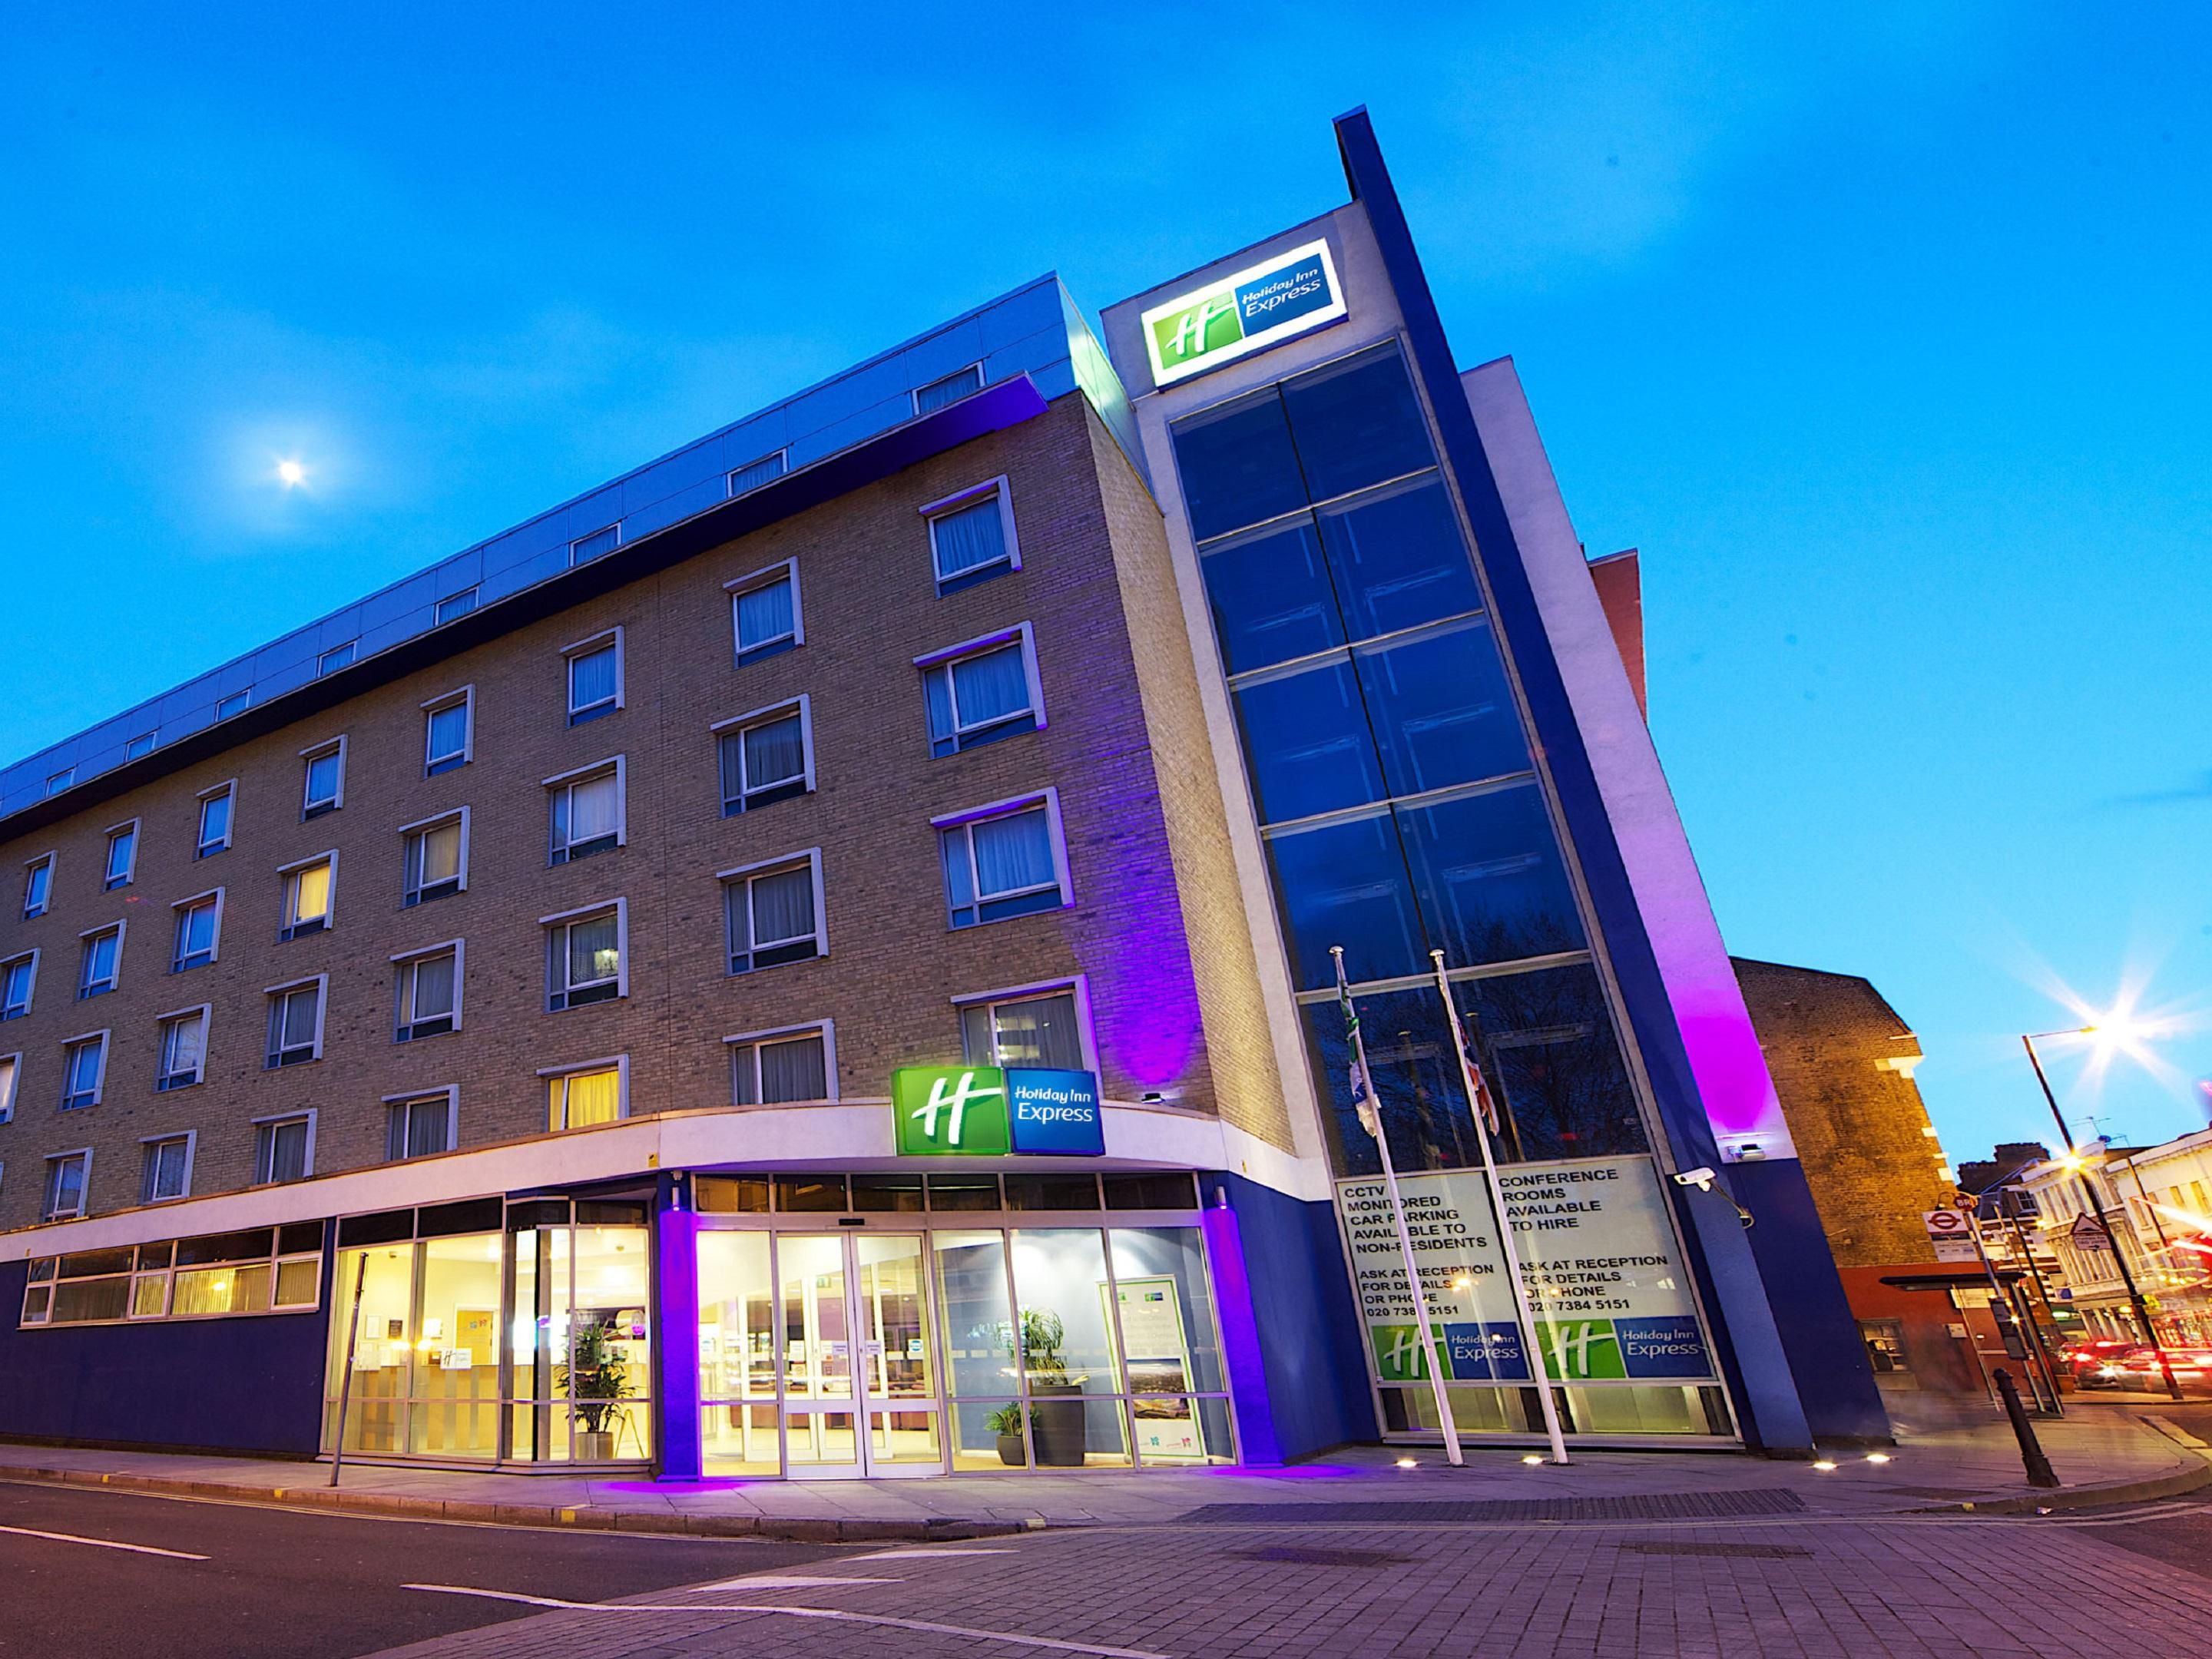 Holiday Inn Express London - Earl